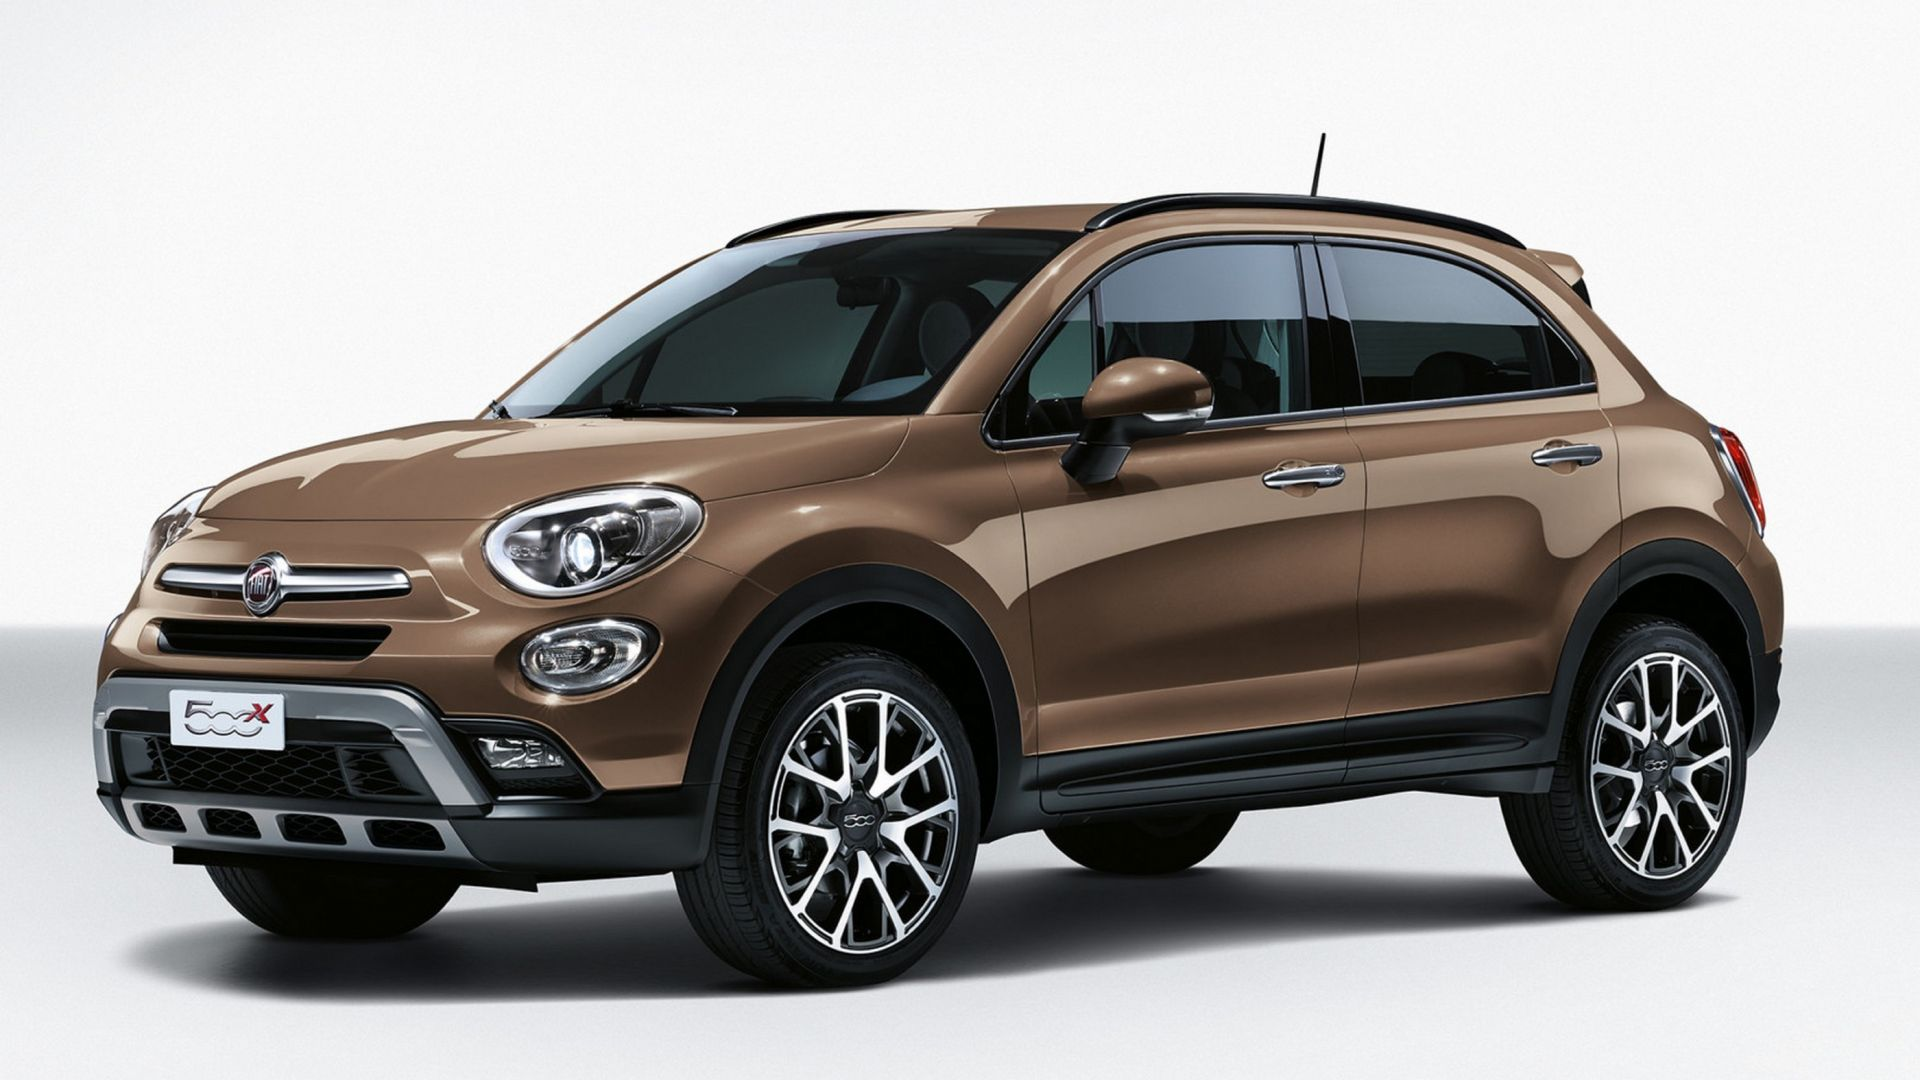 nuova fiat 500x restyling my2018 ecco come cambia il suv di fca motorbox. Black Bedroom Furniture Sets. Home Design Ideas